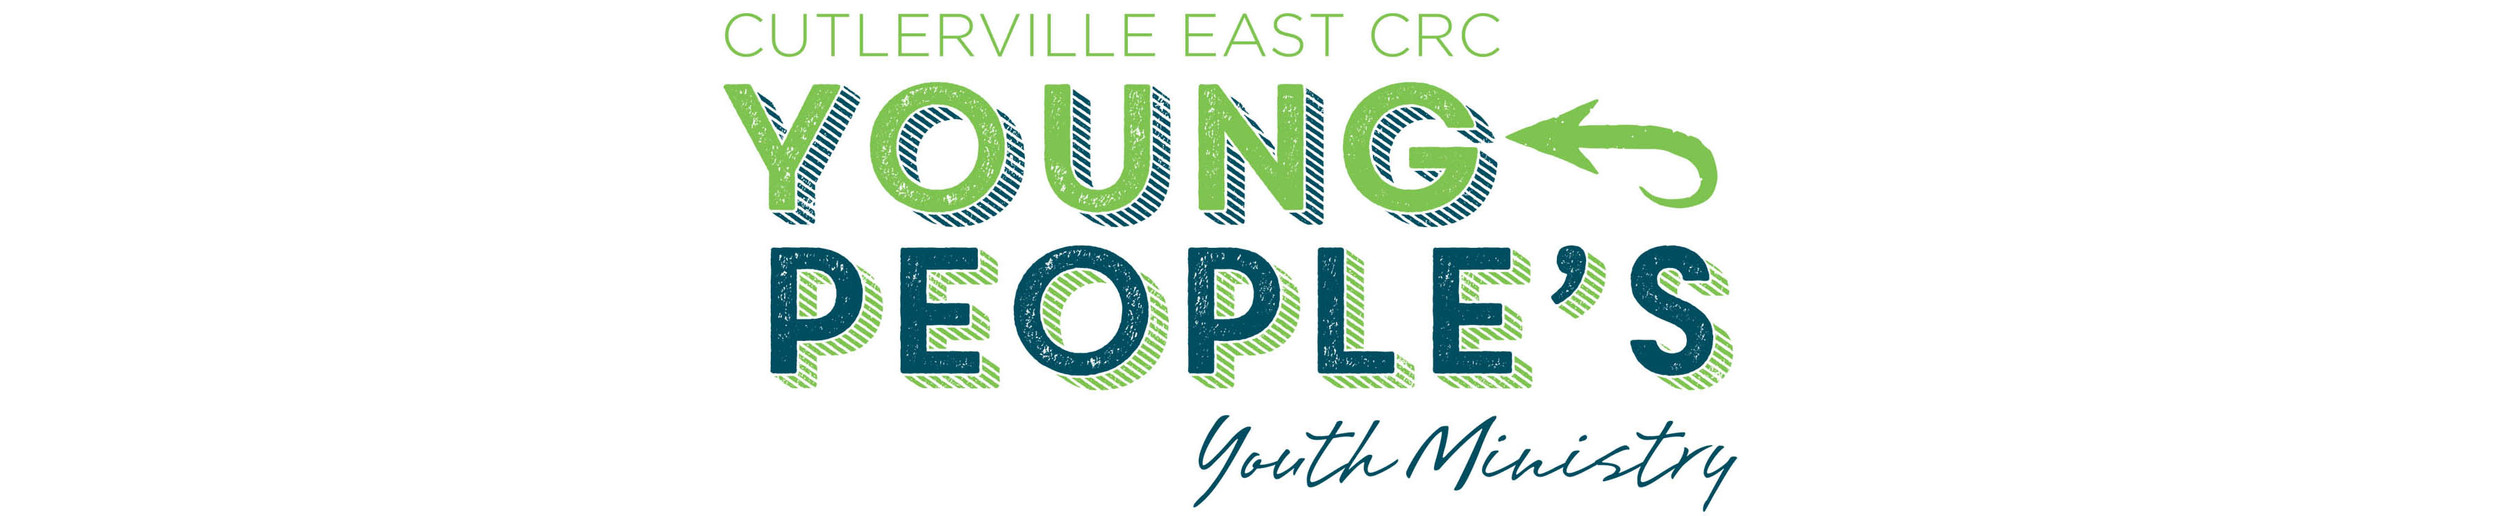 YoungPeoples_banner.jpg